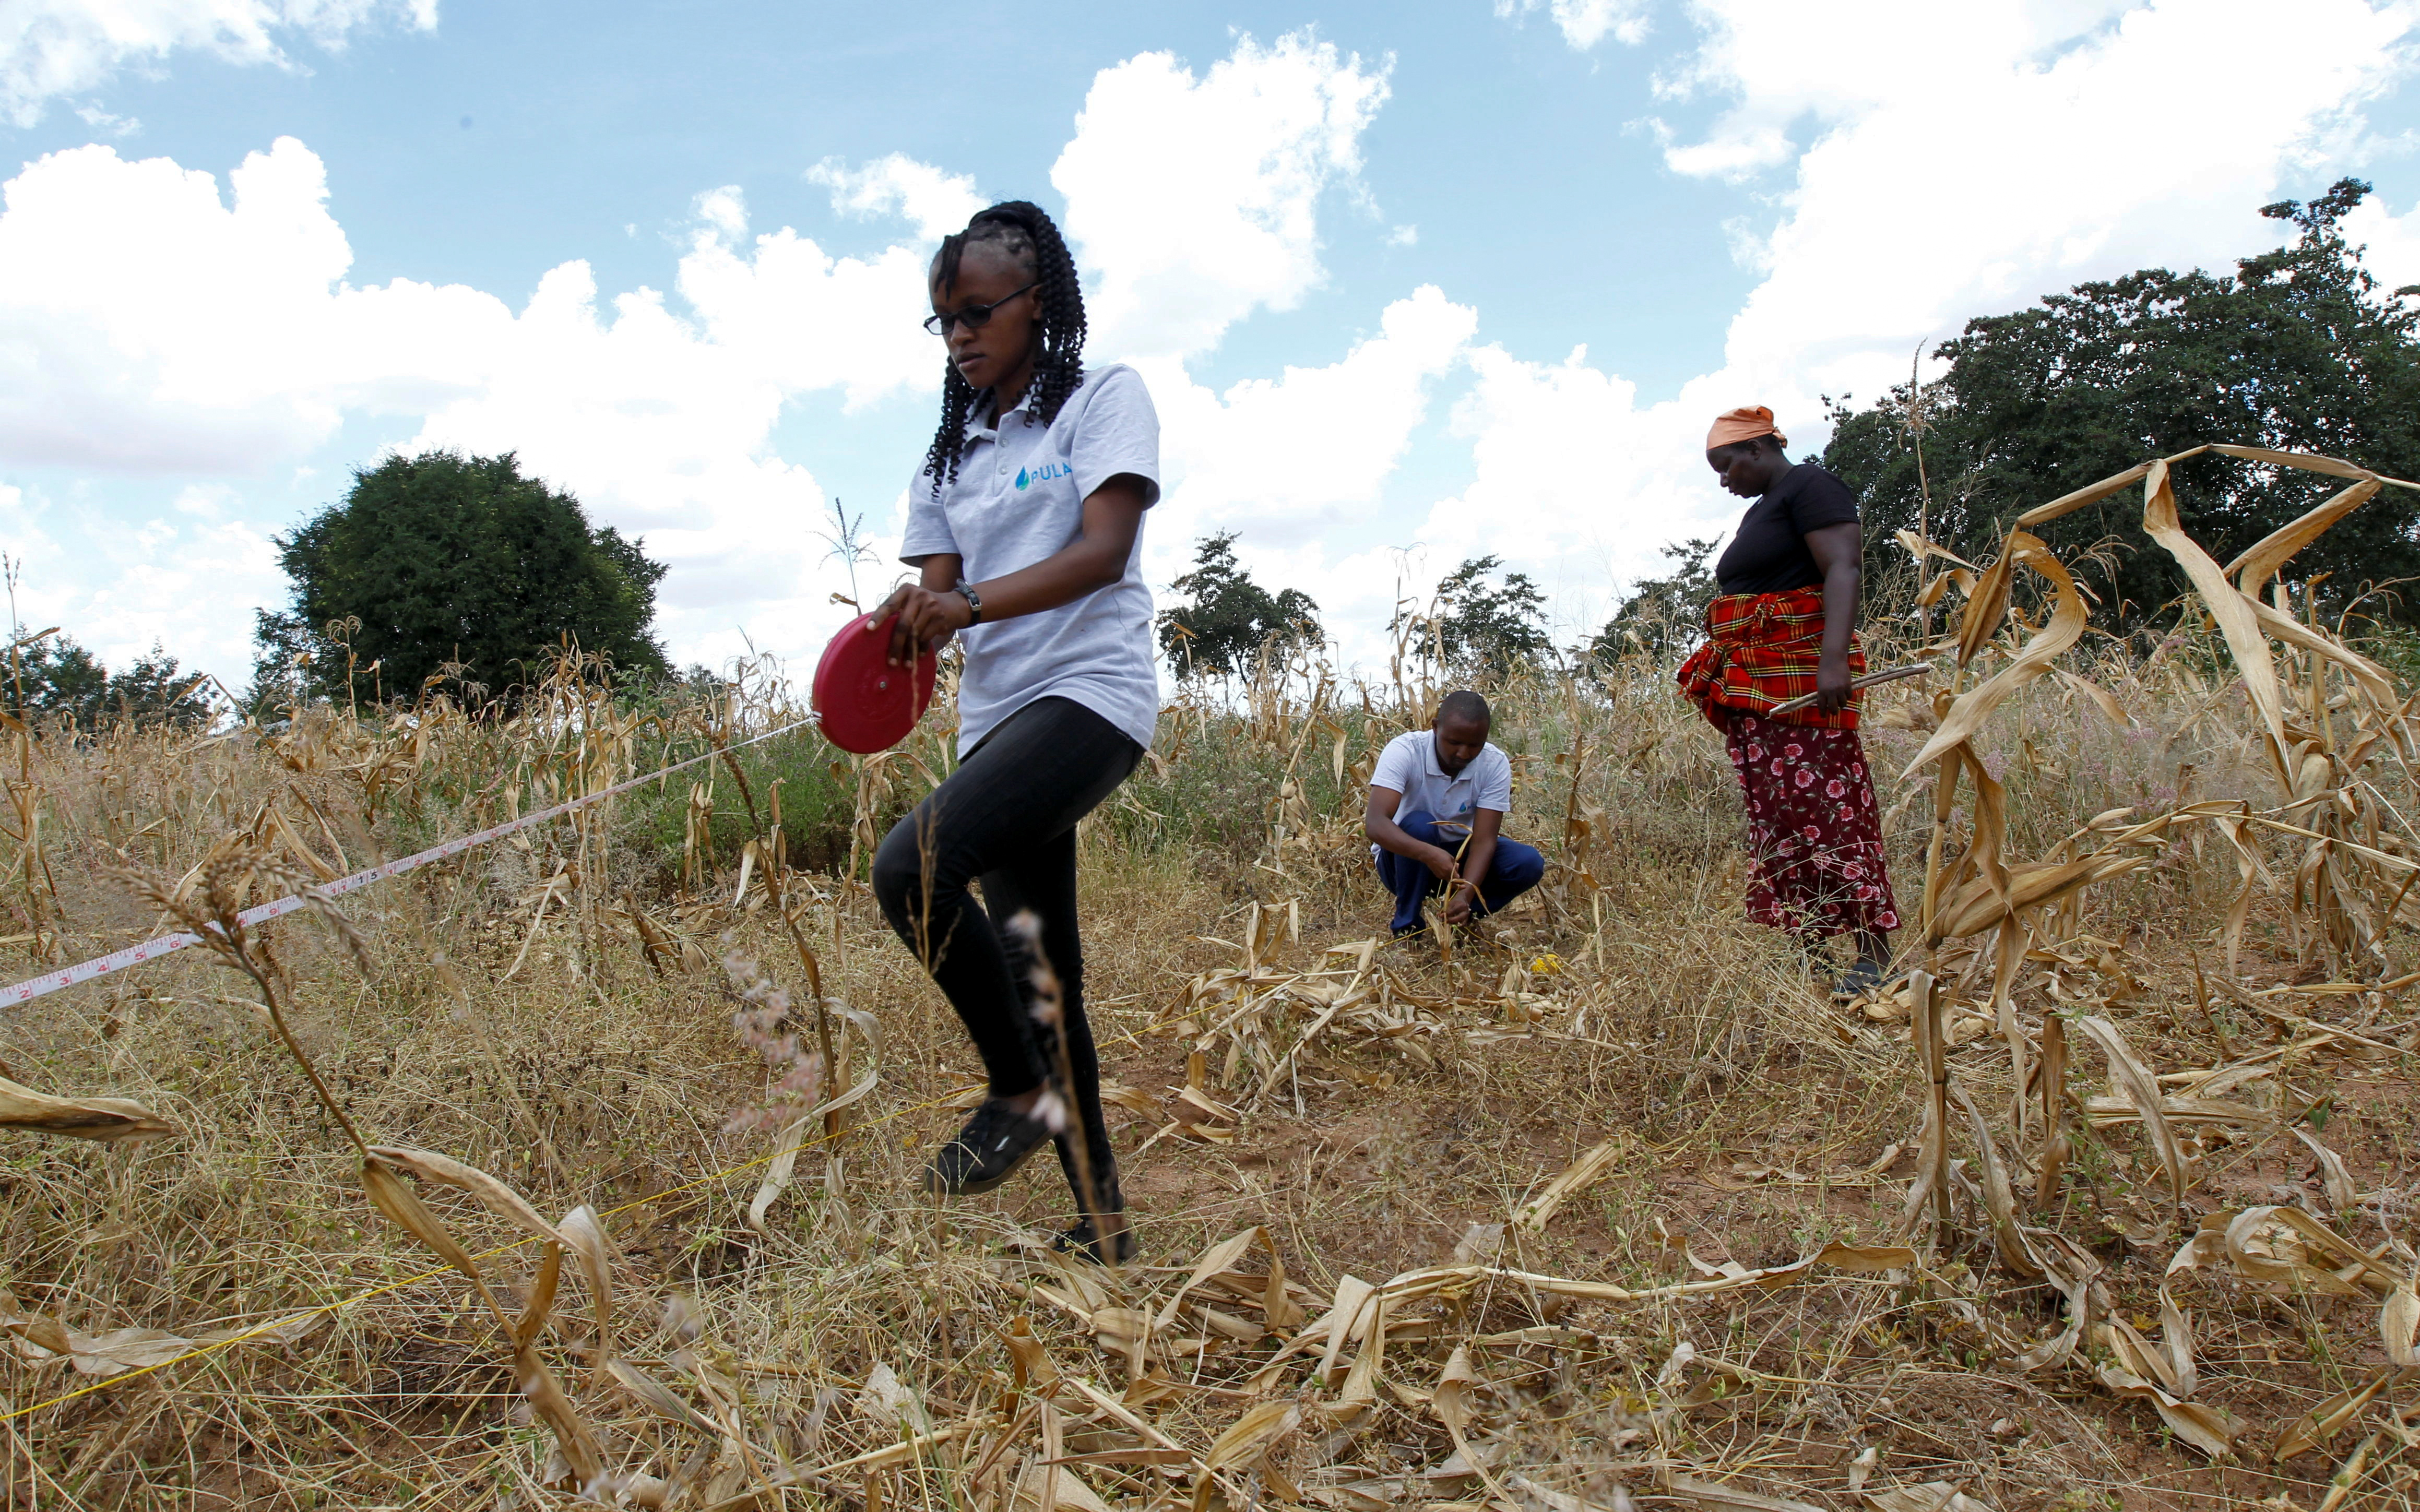 Pula operations manager Daniel Mbuvi and field officer Ruth Wambua take measurements for the area that will be used as a sample for insurance payout, at Waki Munyalo's farm in Kitui county, Kenya, March 17, 2021. Picture taken March 17, 2021. REUTERS/Monicah Mwangi